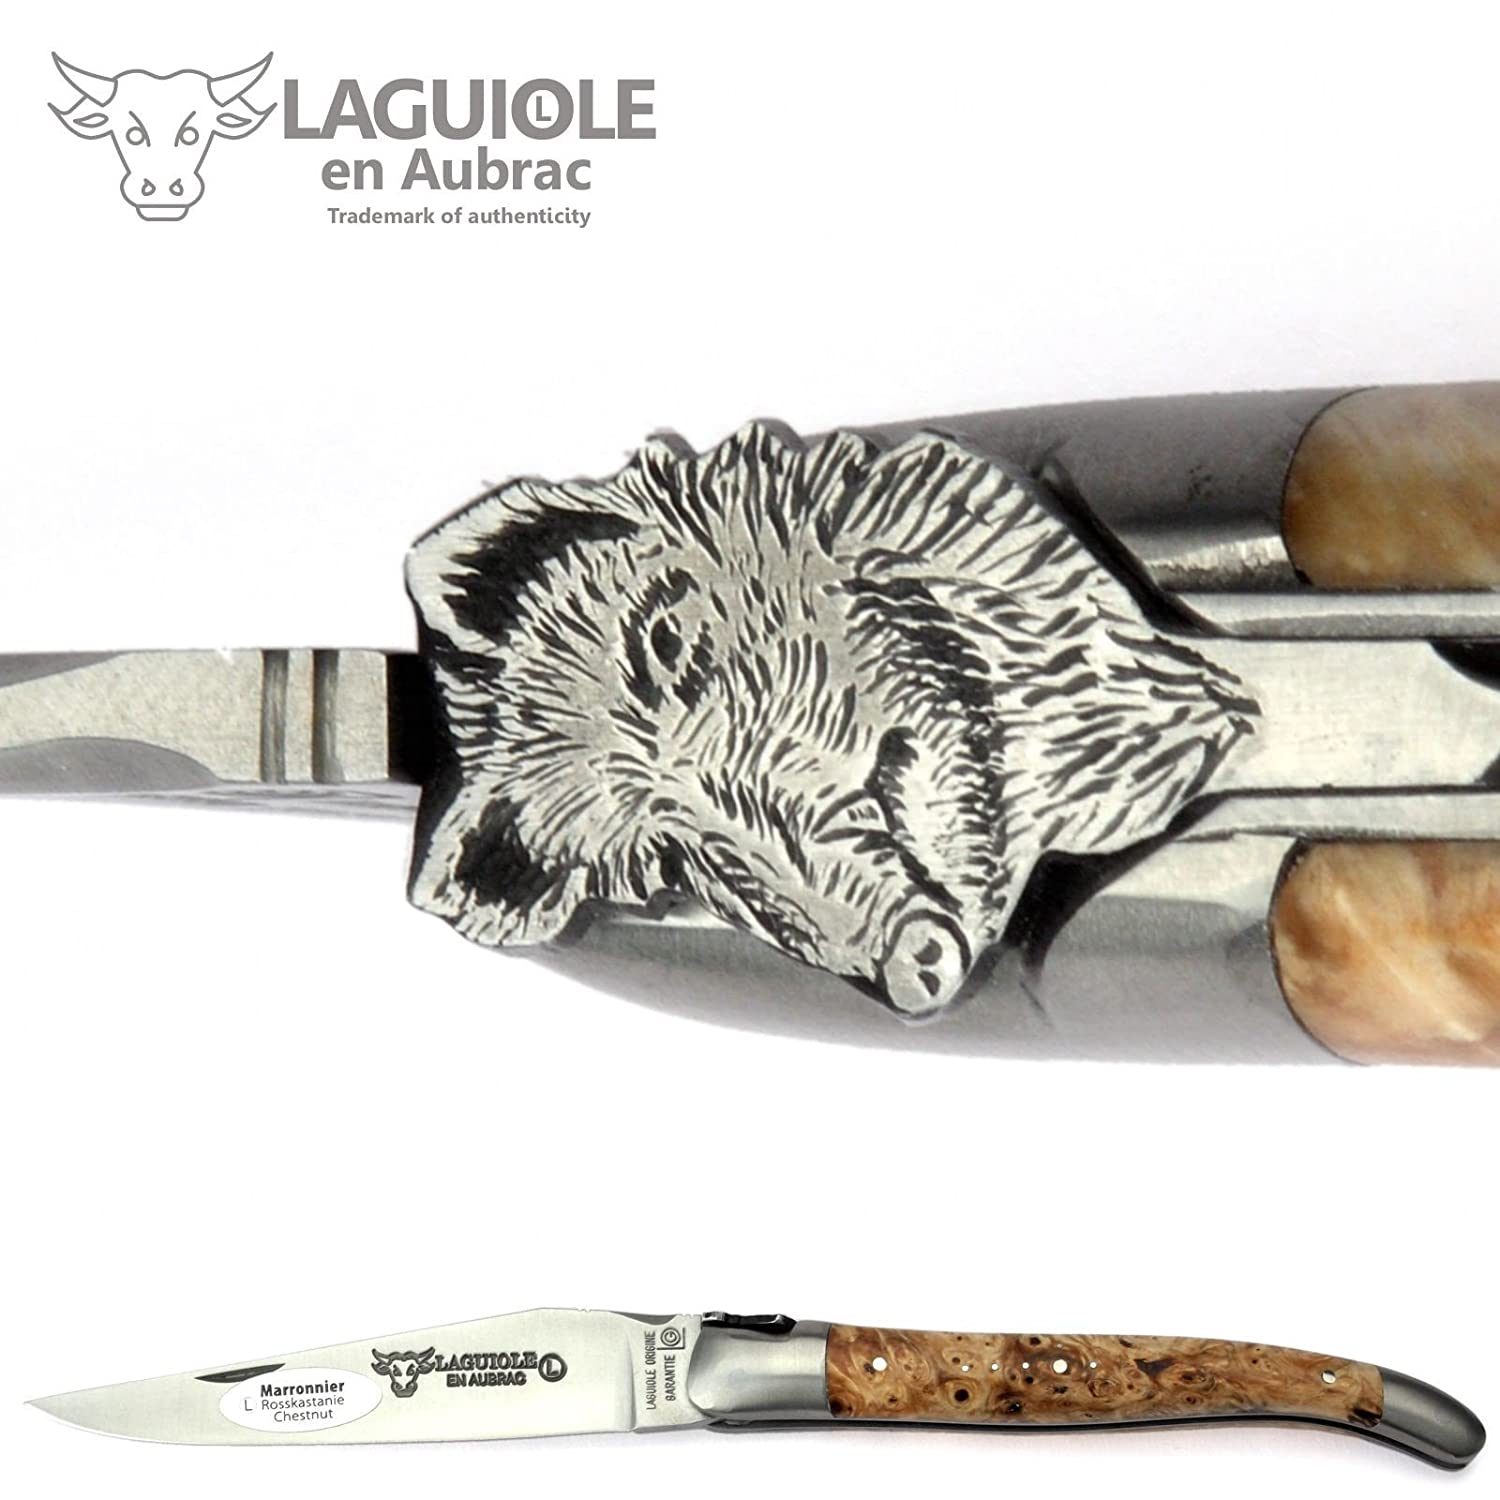 Laguiole en Aubracハンドメイドフレンチナイフ – 12 cm – Special Edition Wild Boar – Horse Chestnut Handle – Blade And Bolstersステンレススチール B01NCUTMMN